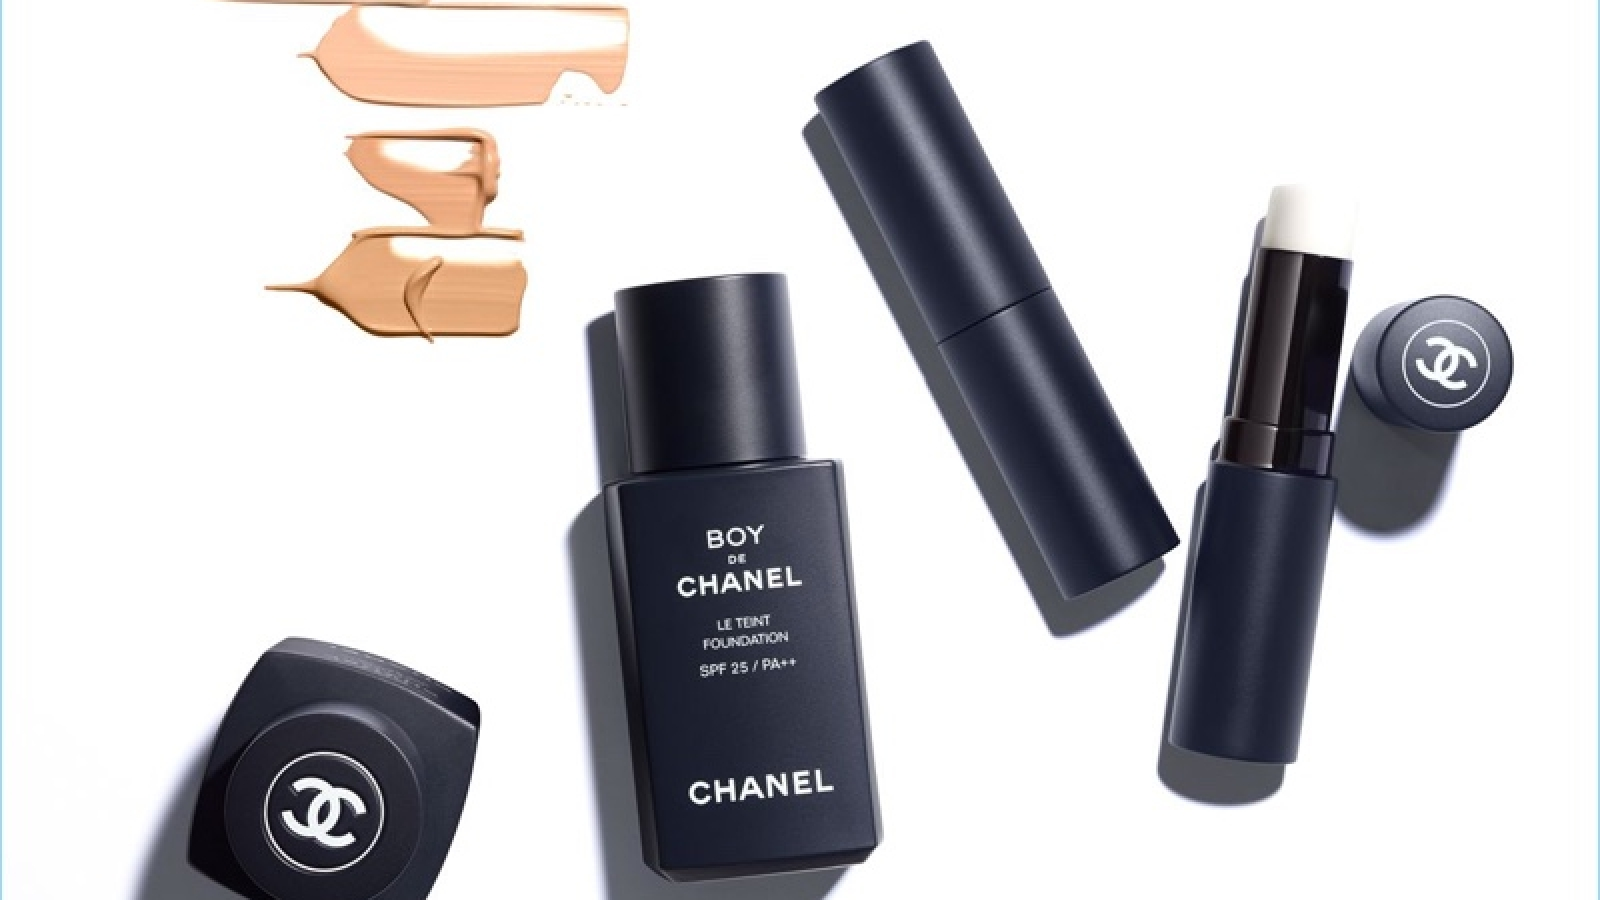 Boy-de-Chanel-Mens-Makeup-002